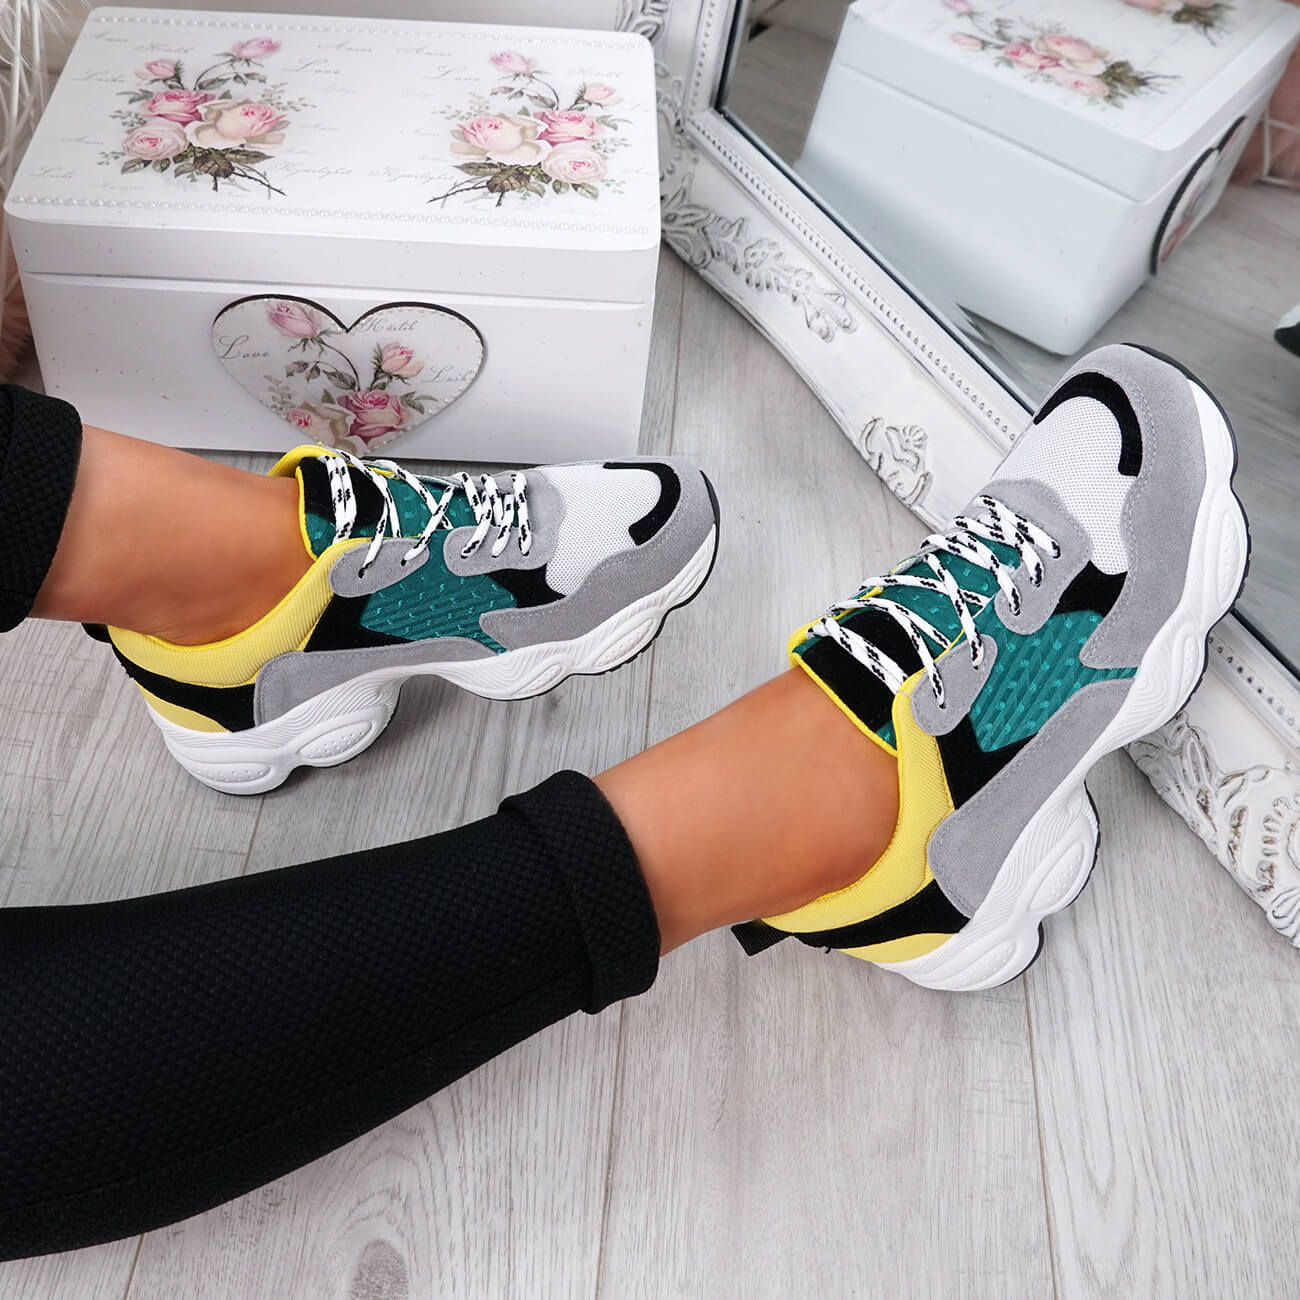 WOMENS-LADIES-RUNNING-GYM-CHUNKY-TRAINERS-SNEAKERS-SHOES-SIZE miniatura 22